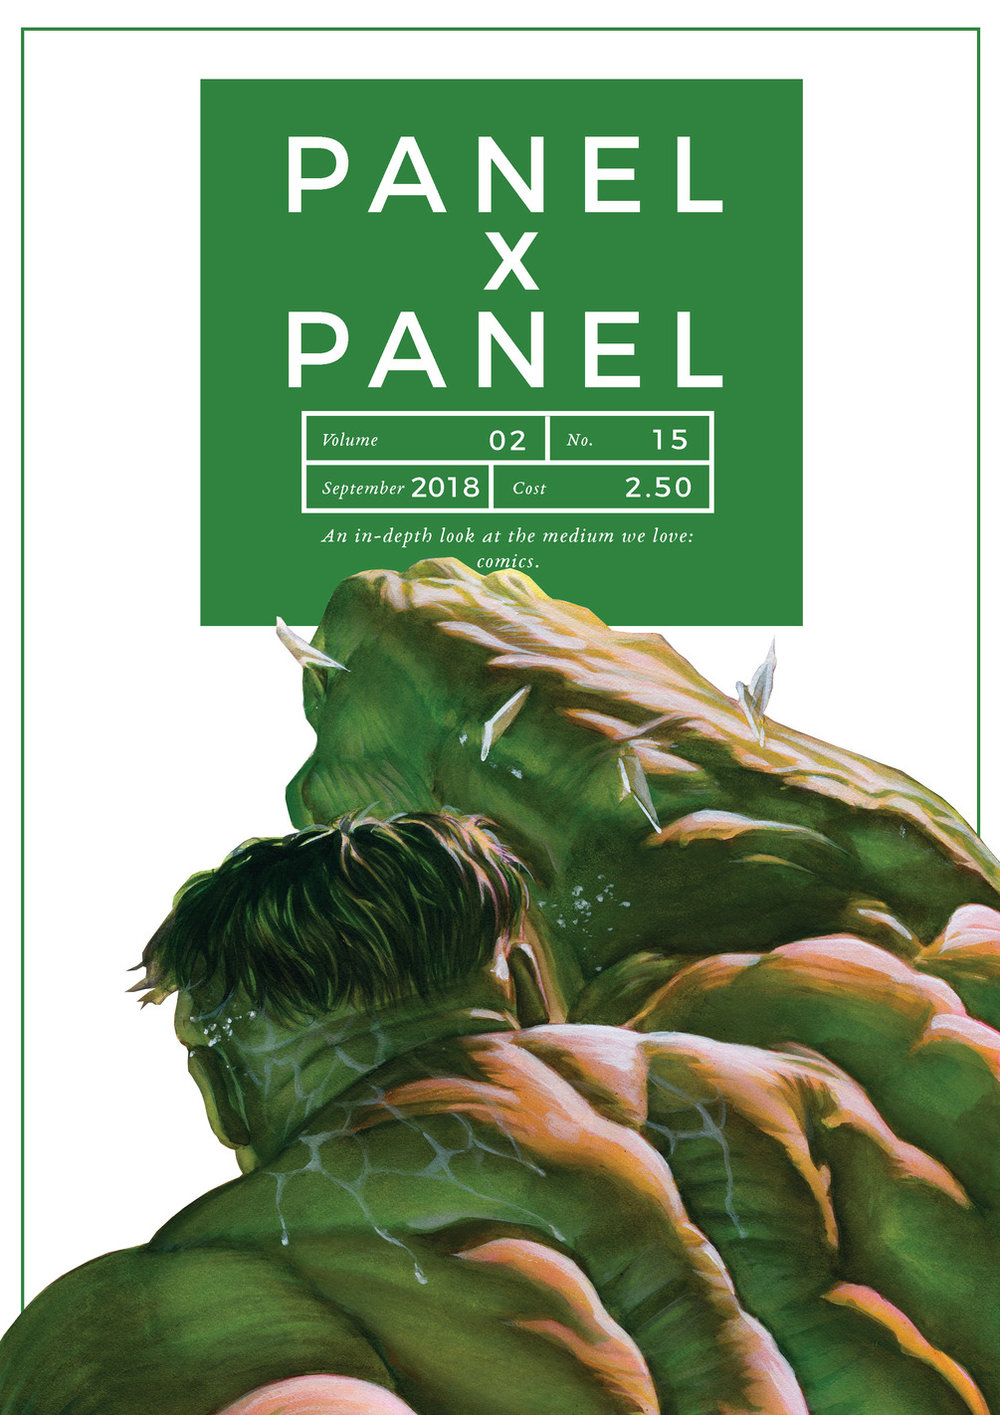 PanelxPanel_20Vol1No15.jpg